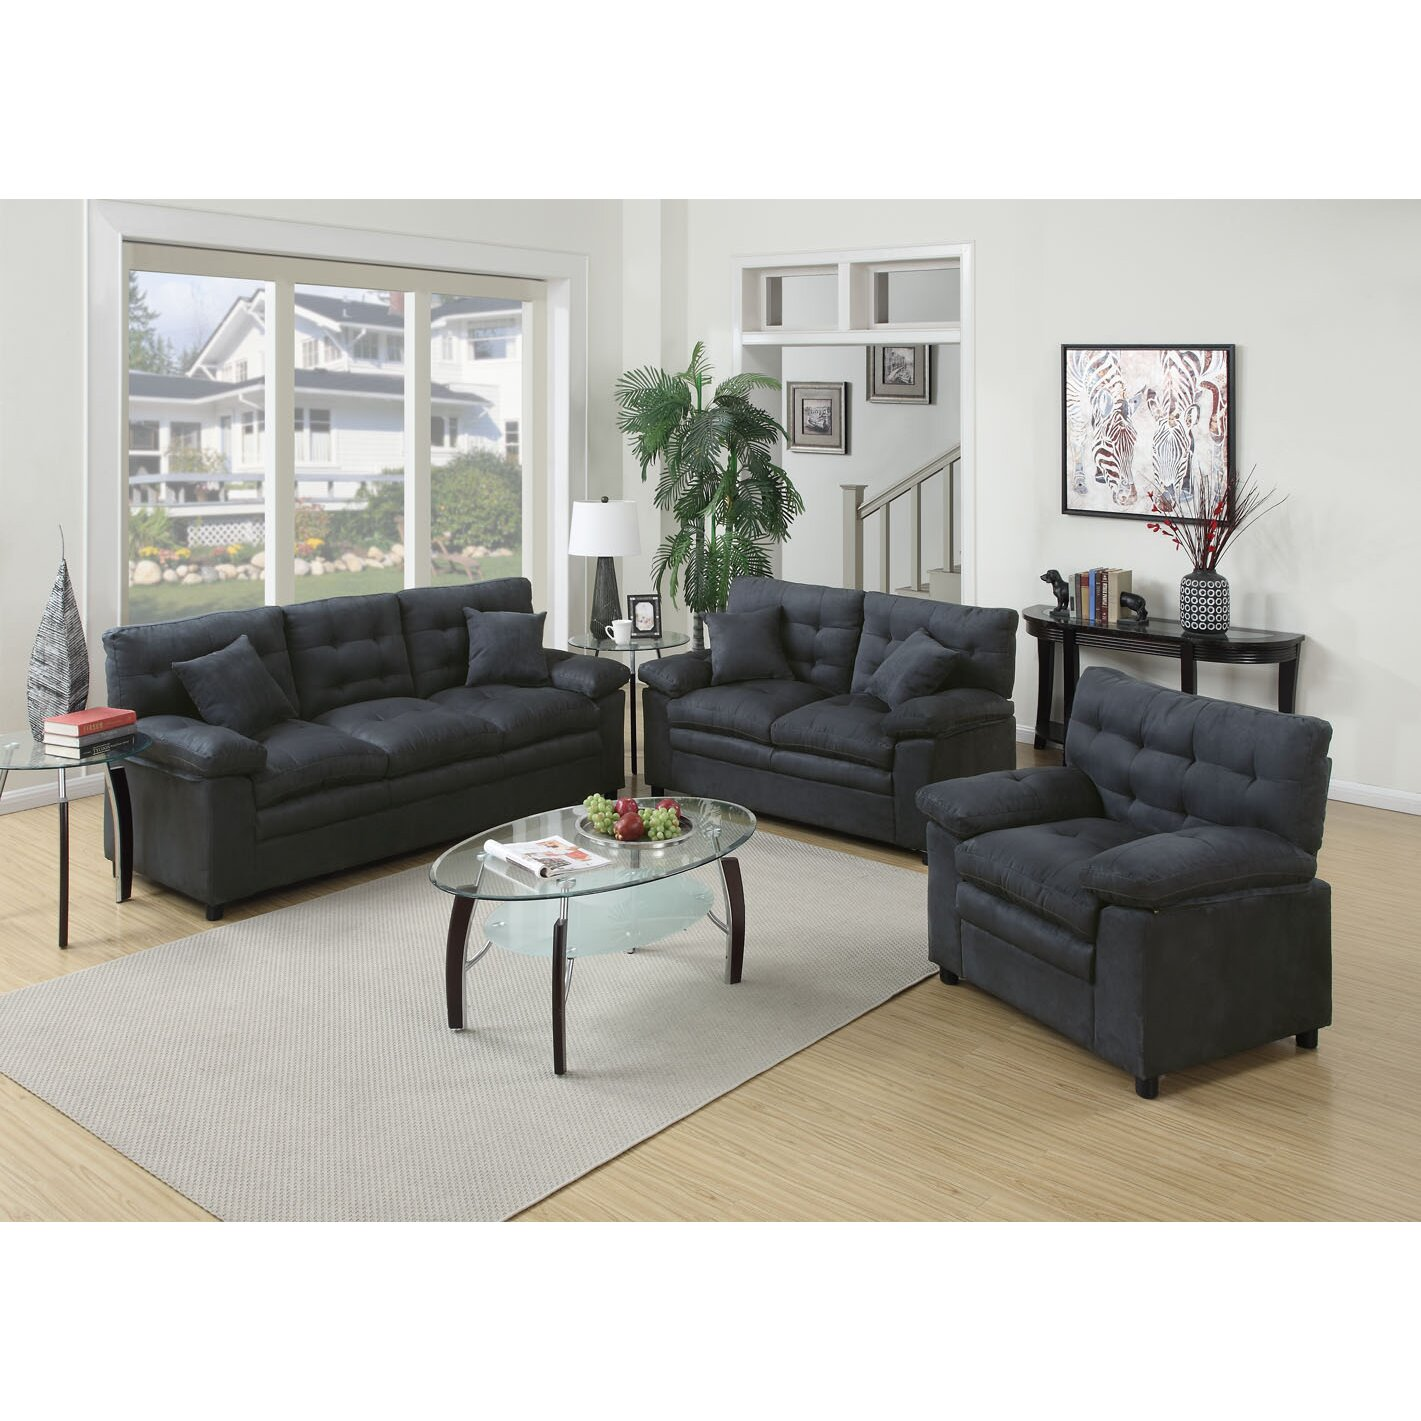 Poundex Bobkona Colona 3 Piece Living Room Set & Reviews